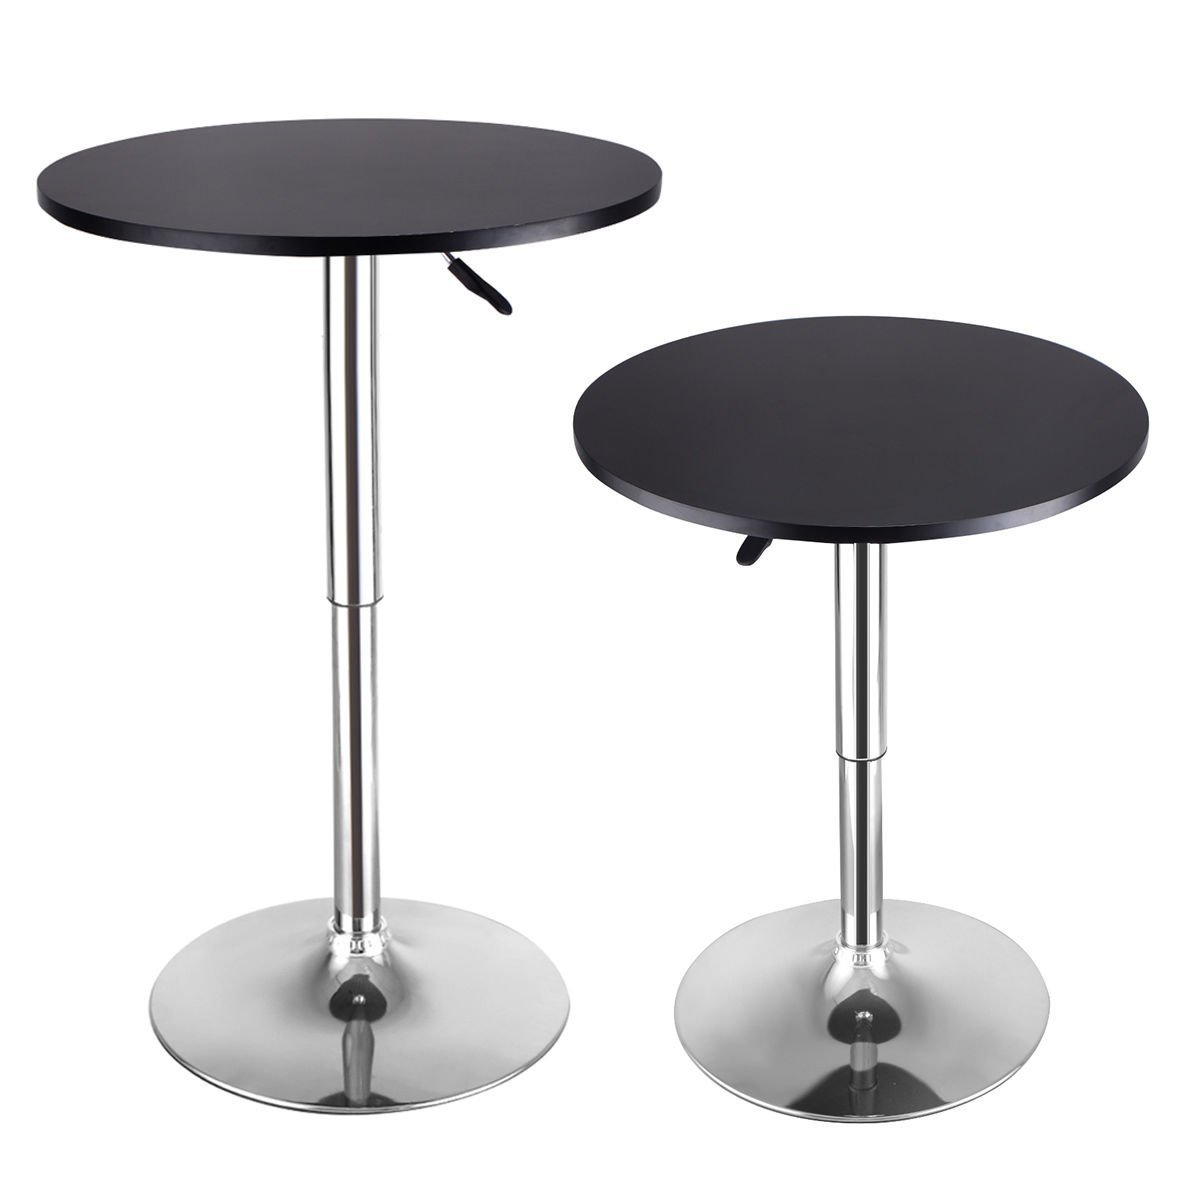 Tremendous Modern Round Bar Table Adjustable Wood Top Gmtry Best Dining Table And Chair Ideas Images Gmtryco